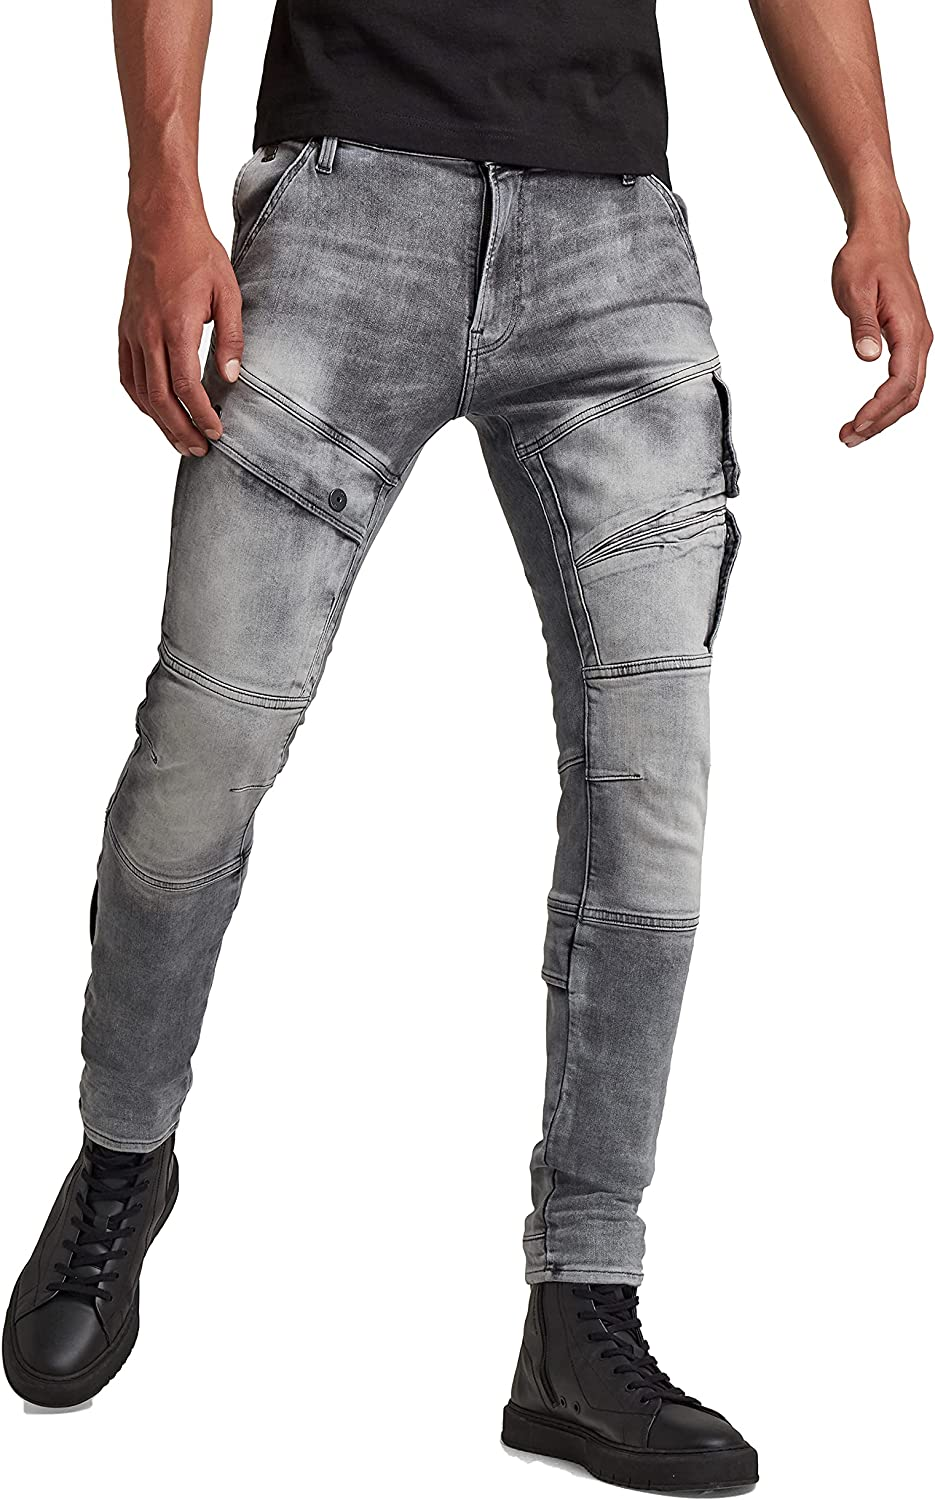 G-Star Raw Free shipping Men's Airblaze Jeans Skinny Max 83% OFF Fit 3D